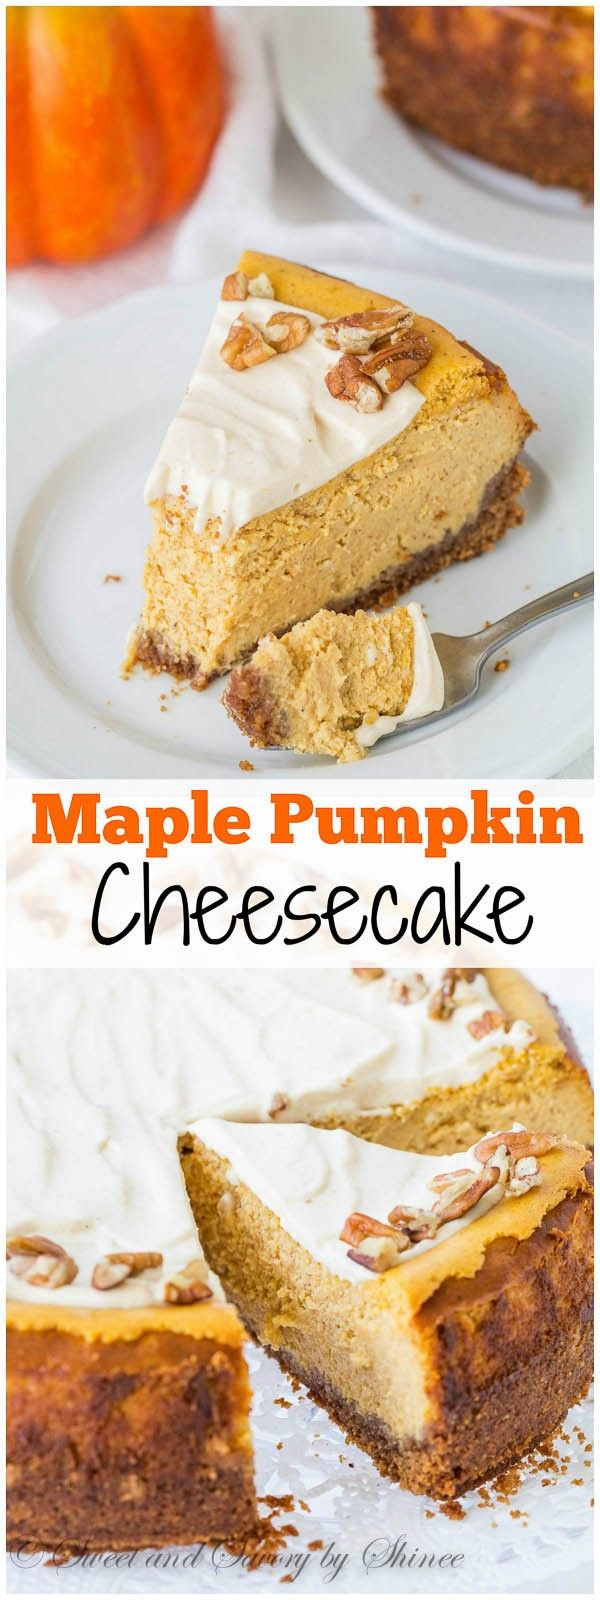 Irresistibly creamy pumpkin cheesecake, sweetened with maple syrup and smeared with maple pumpkin whipped cream frosting. It's your next favorite fall dessert!